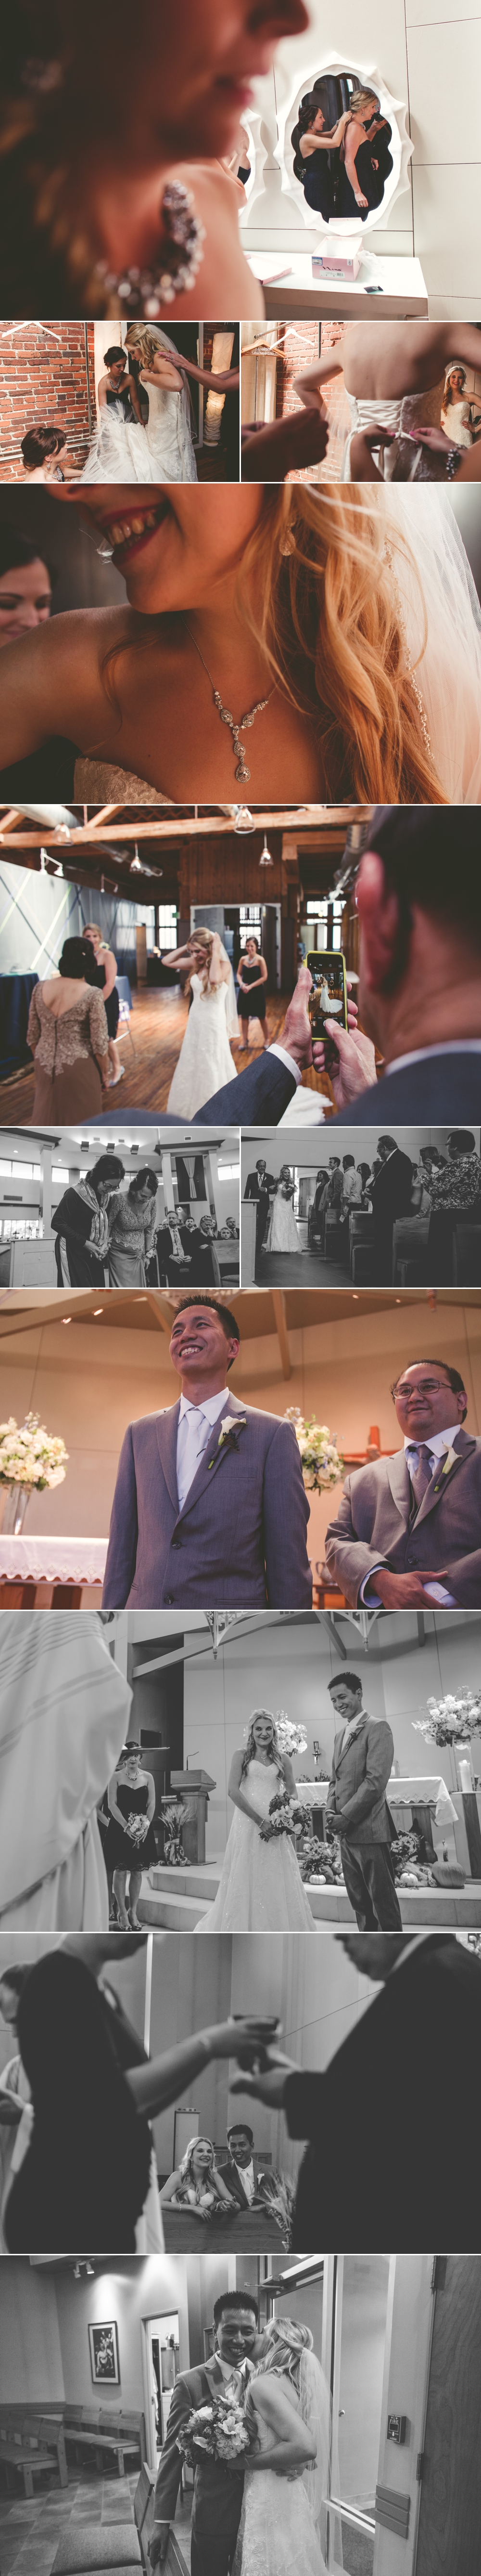 jason_domingues_photography_best_kansas_city_wedding_photographer_creative_kc_weddings_raphael_hotel_country_club_plaza_berg_event_space_downtown_documentary_portraits_2